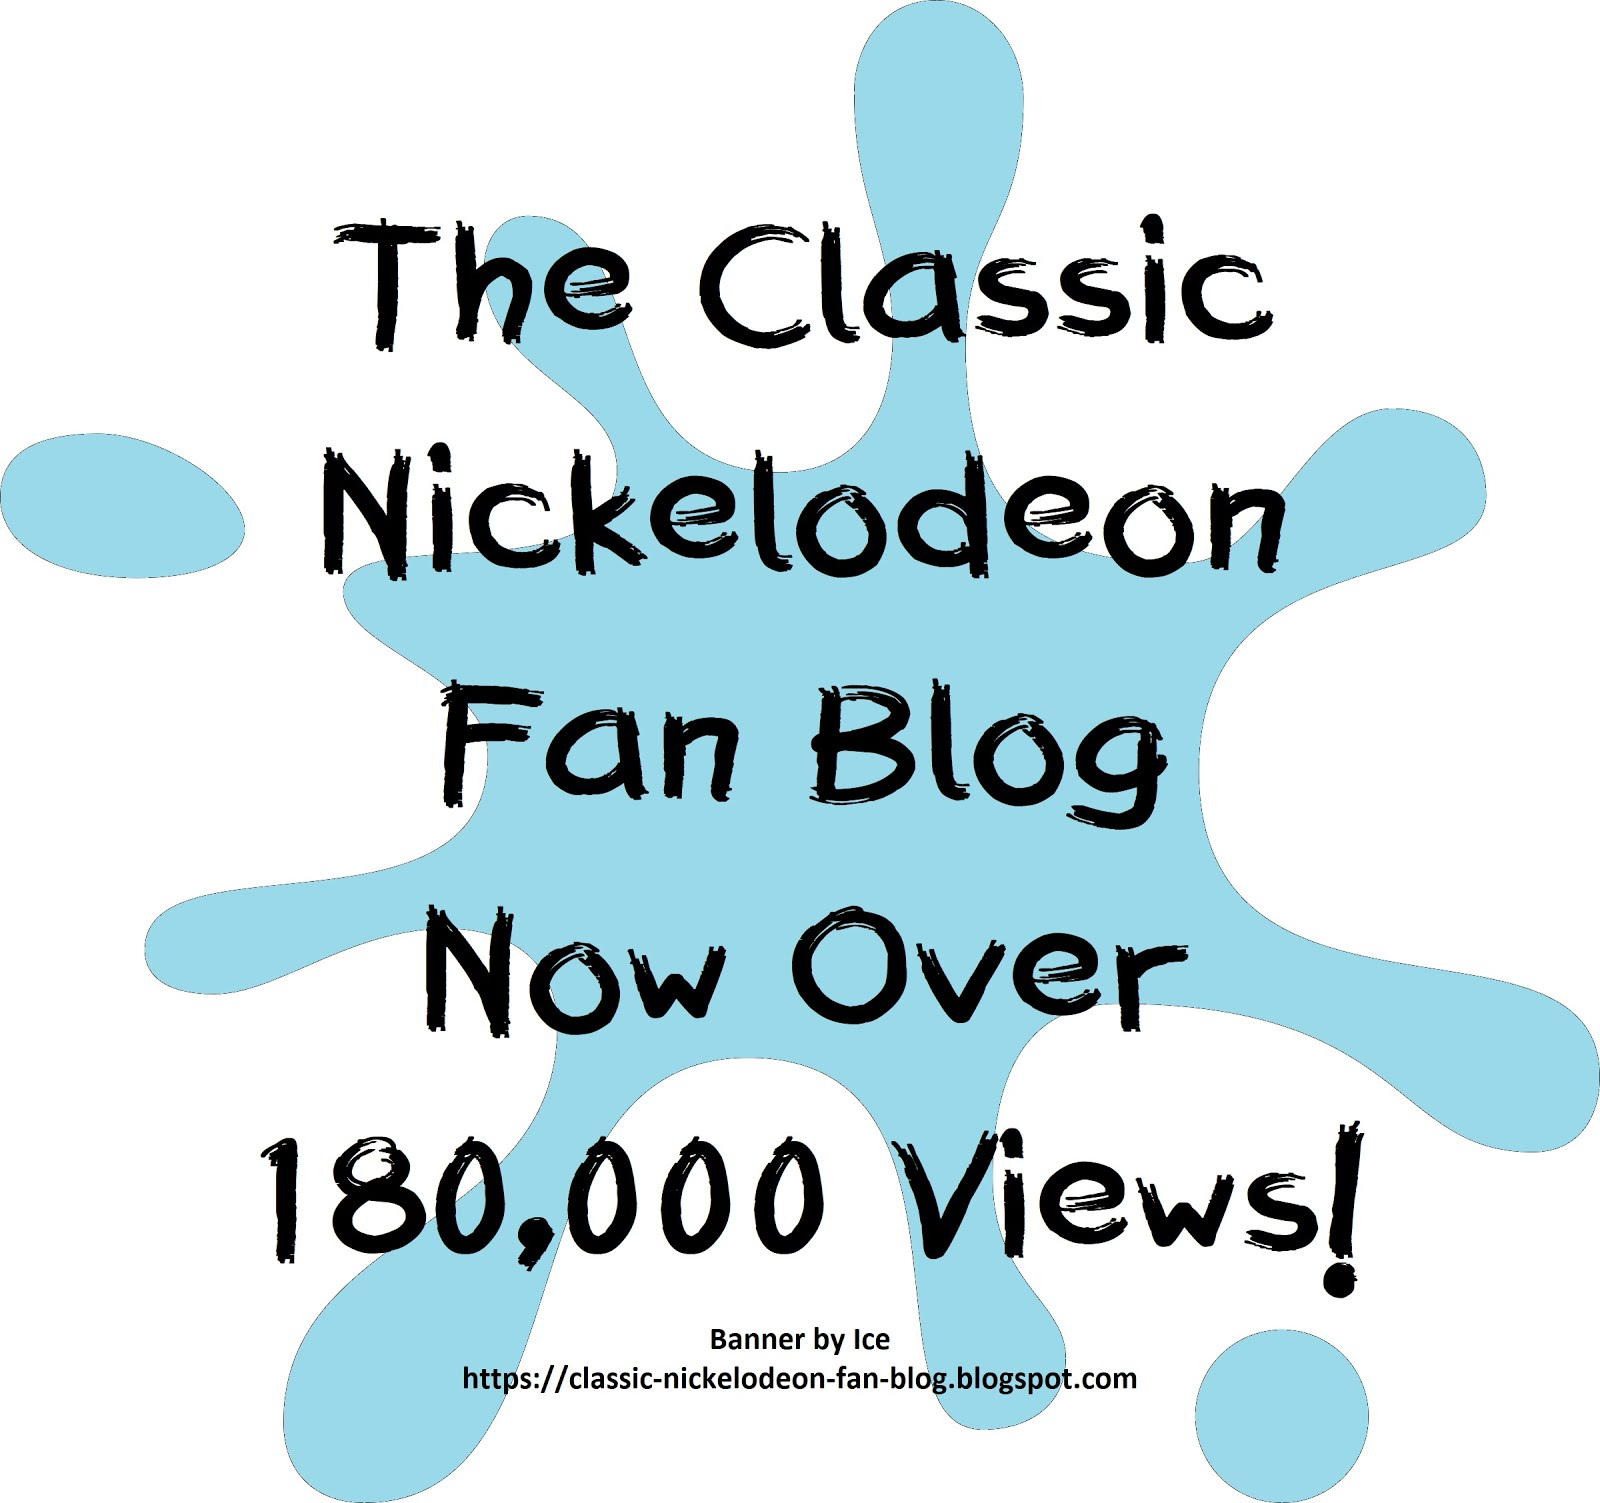 Over 180,000 Views